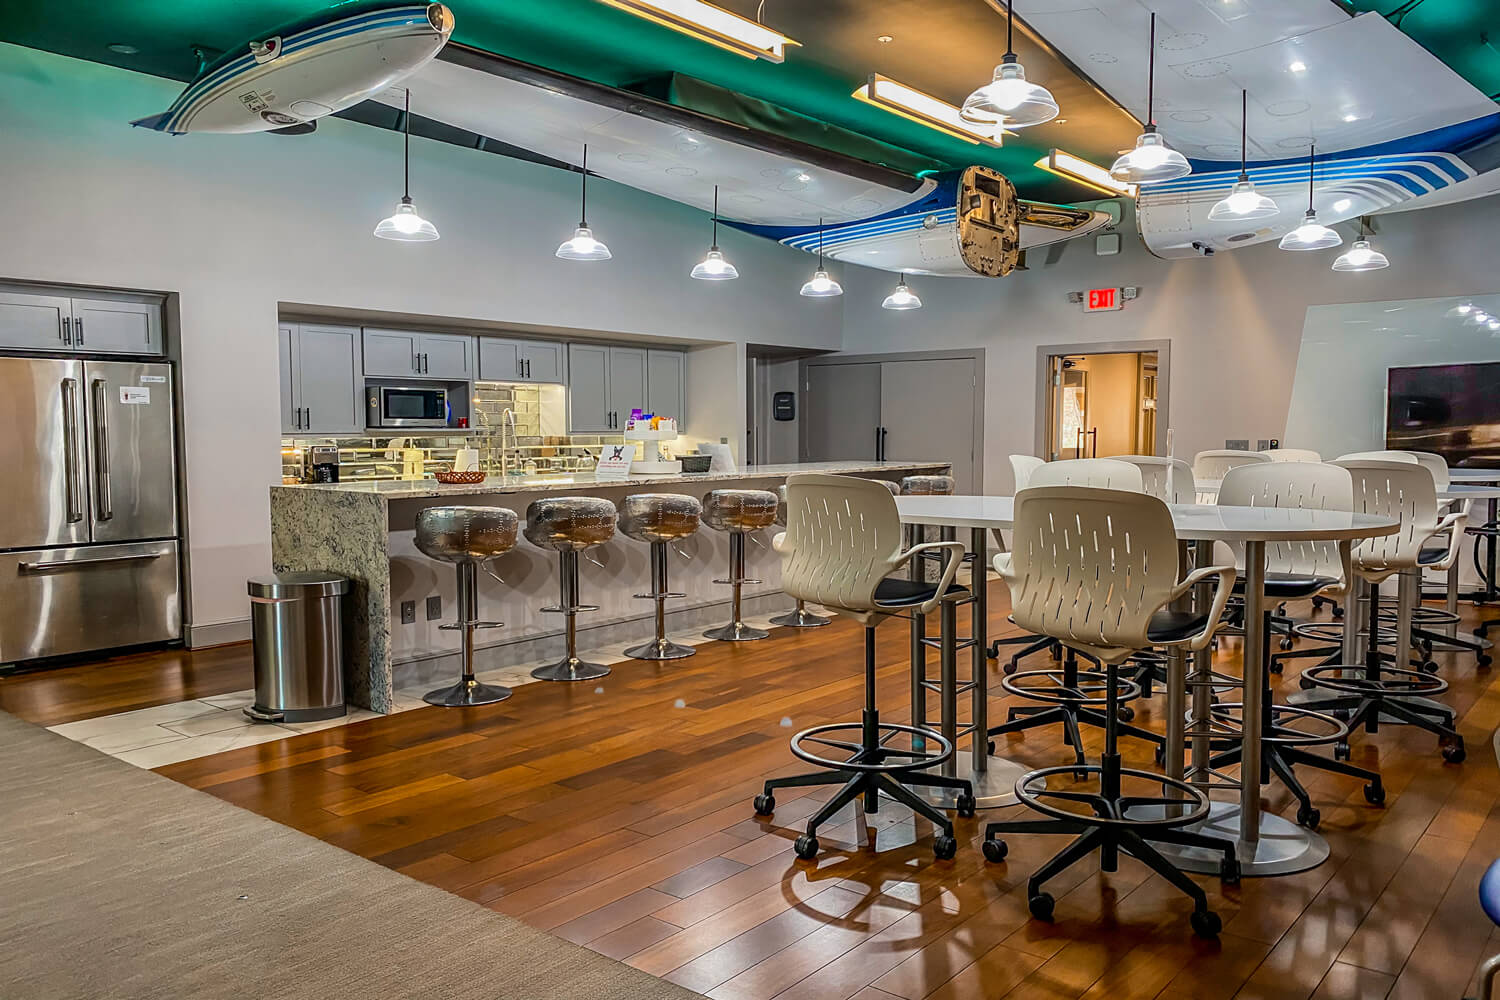 MGMWerx Collaboration Space - Kitchen Area - Designed by Foshee Architecture